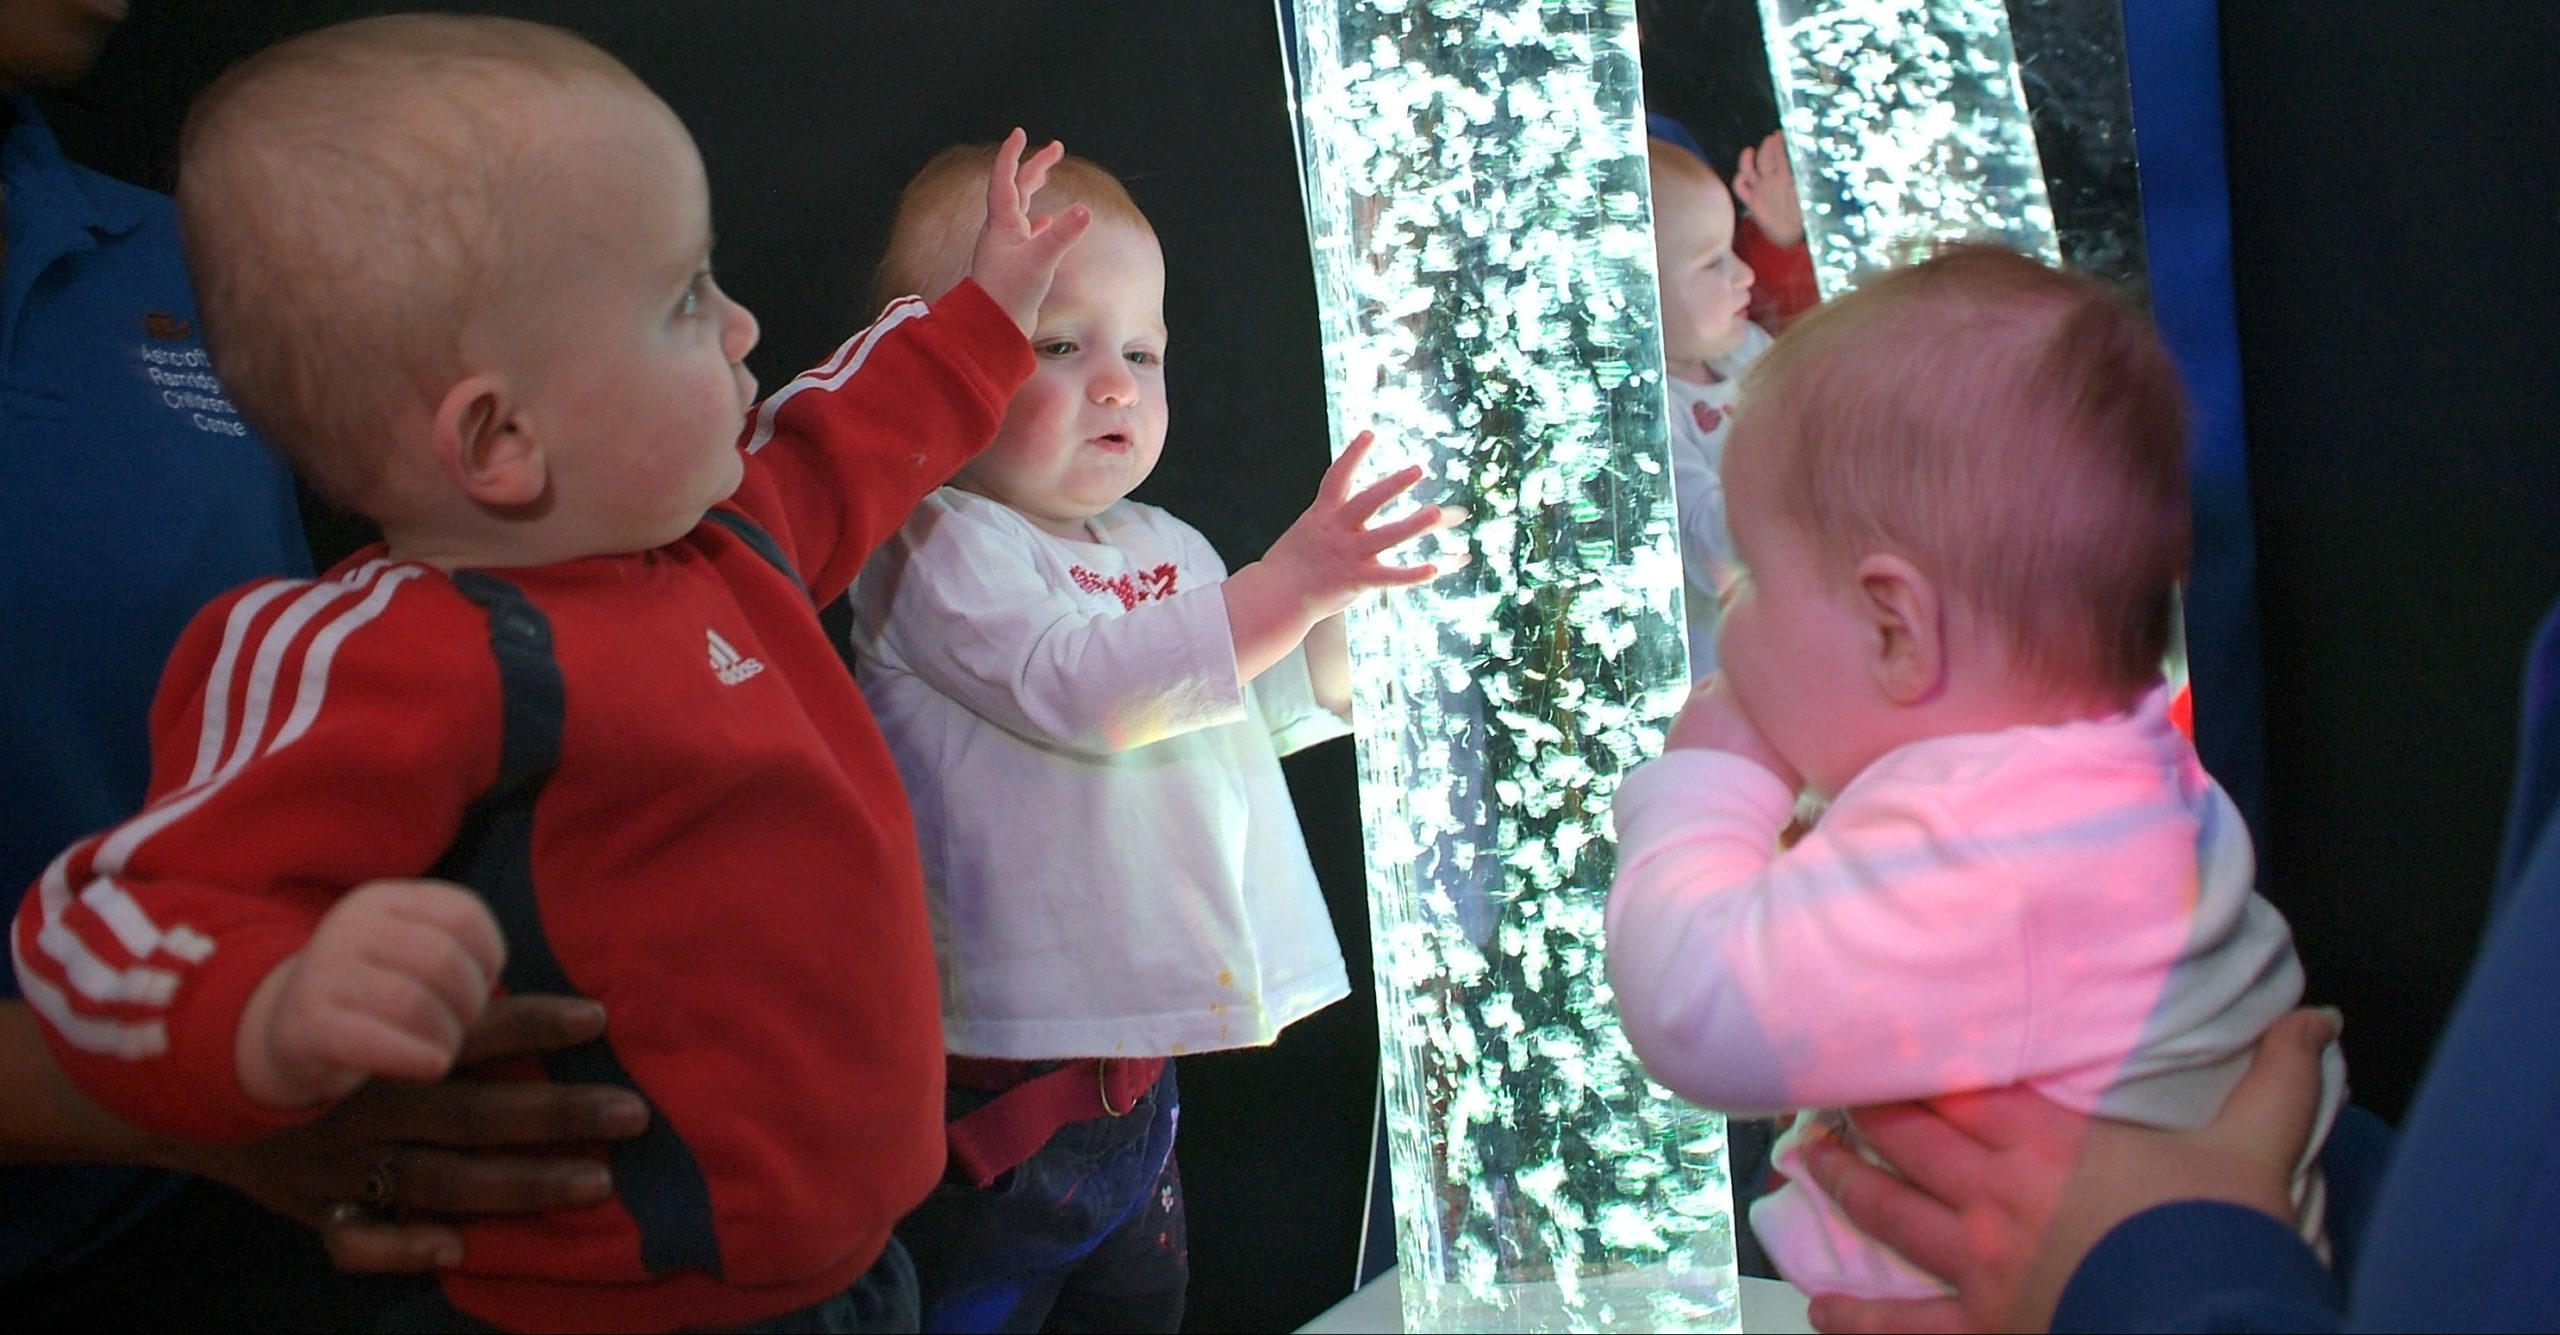 baby admiring the bubble tube inside the phyzzpod